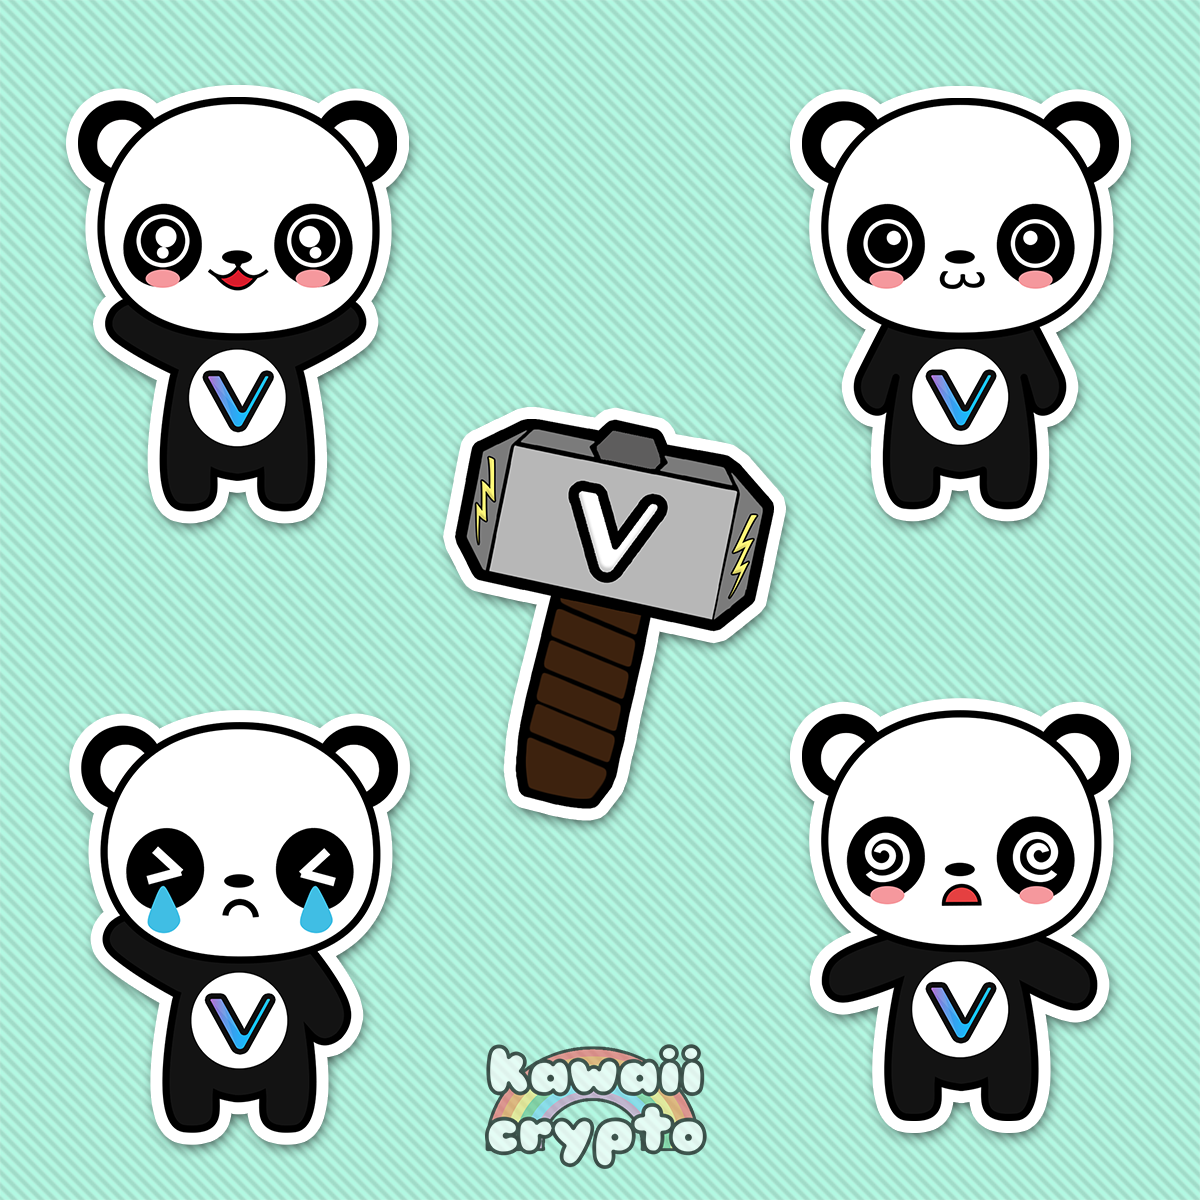 Vechain Panda 5 Sticker Pack